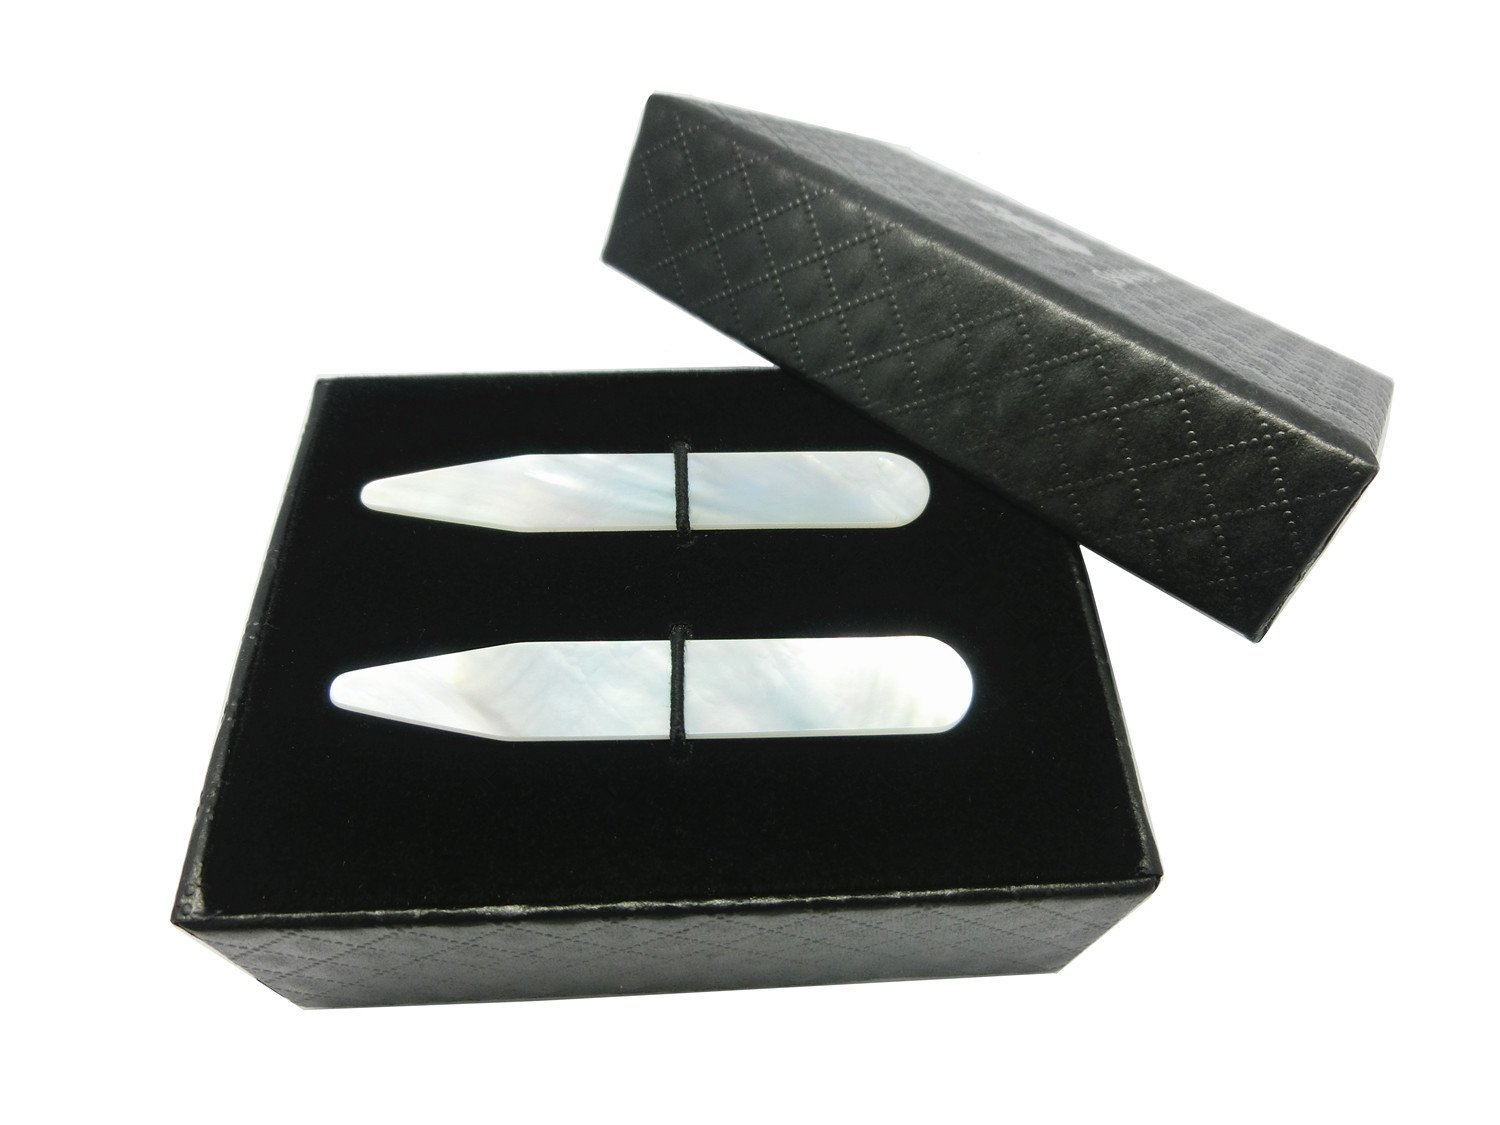 Shang Zun Mother of Pearl Shell Collar Stays with Box,2 Pcs